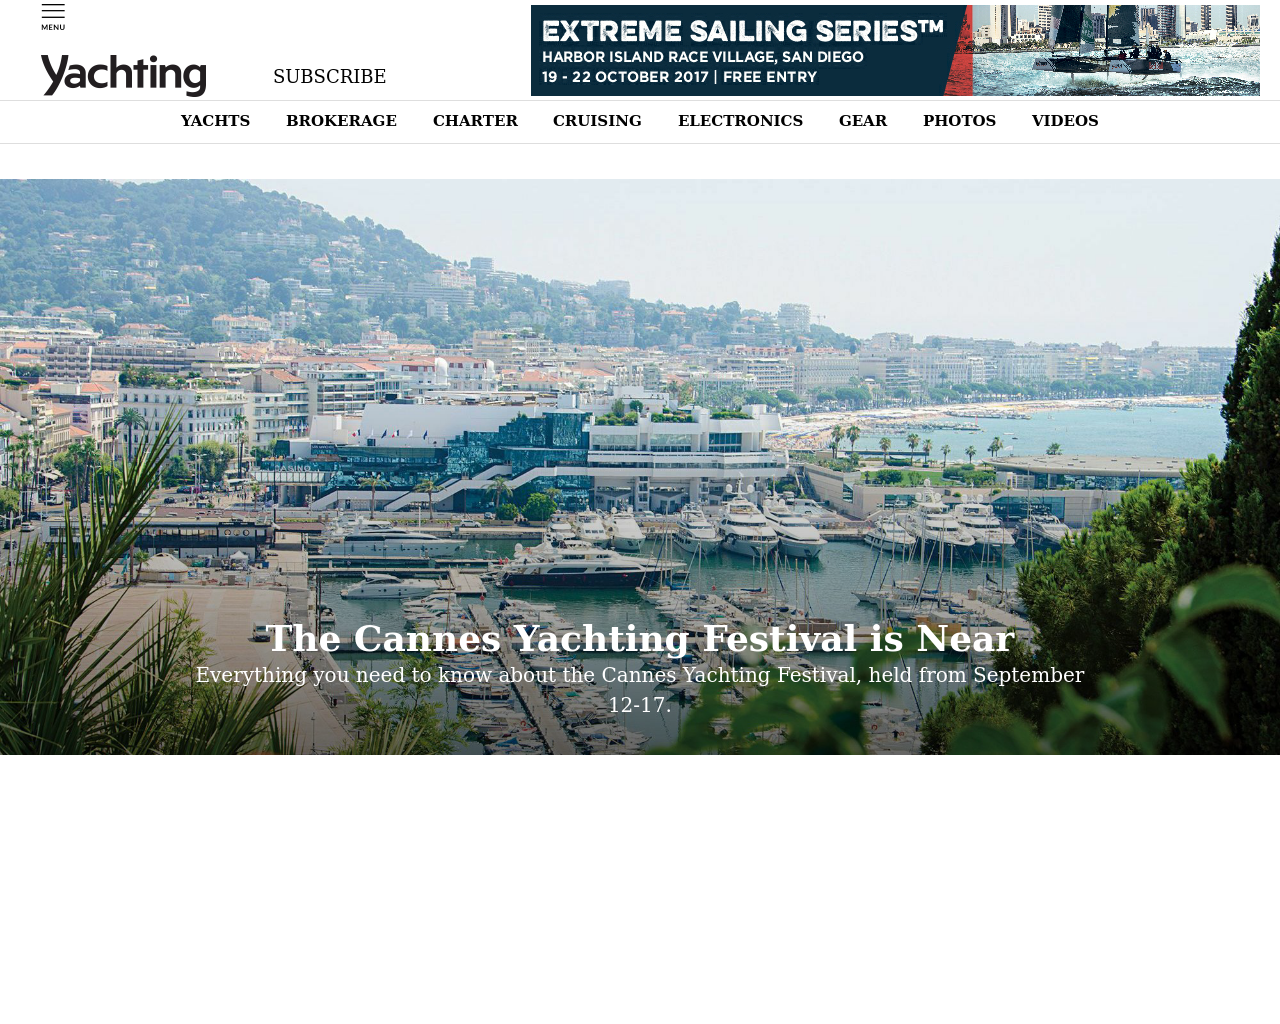 Yachting-Advertising-Reviews-Pricing